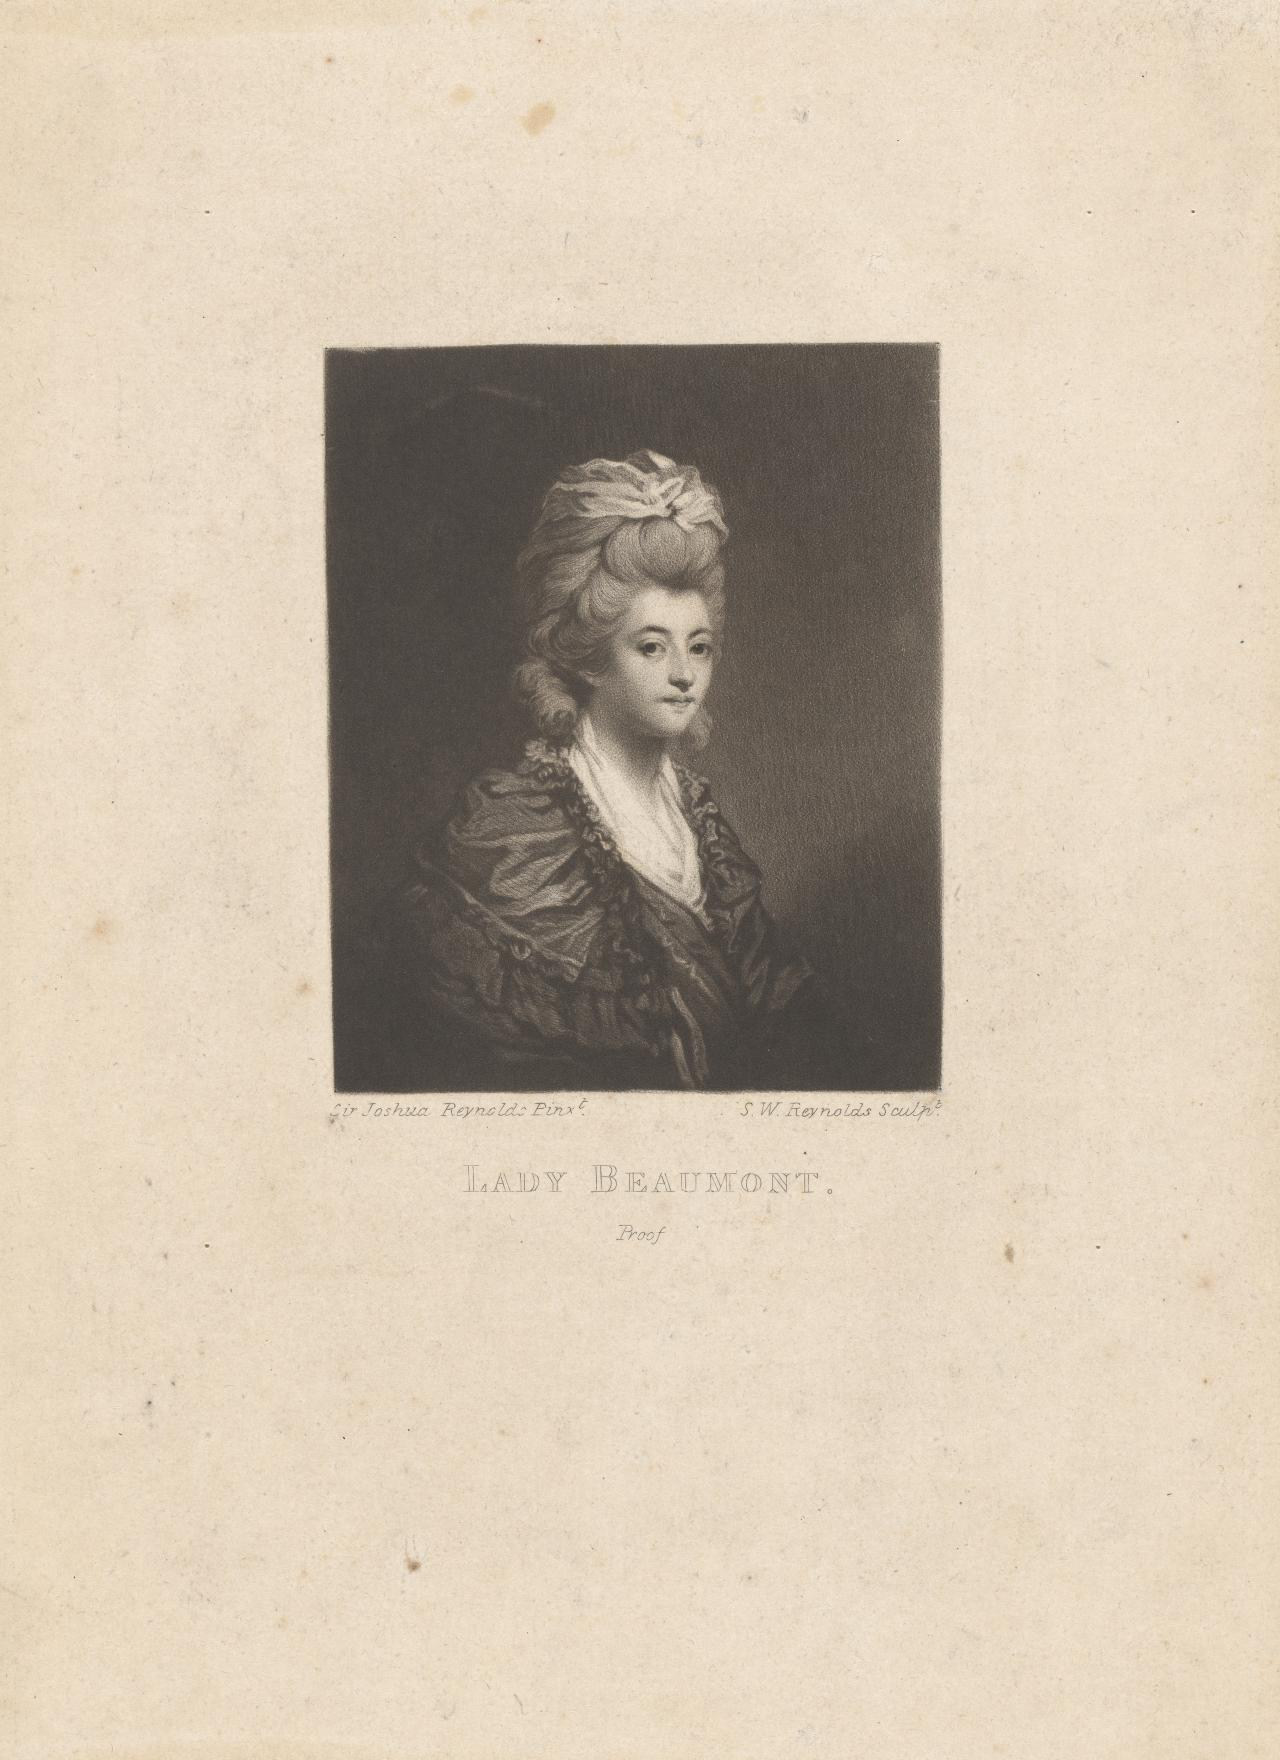 Lady Beaumont